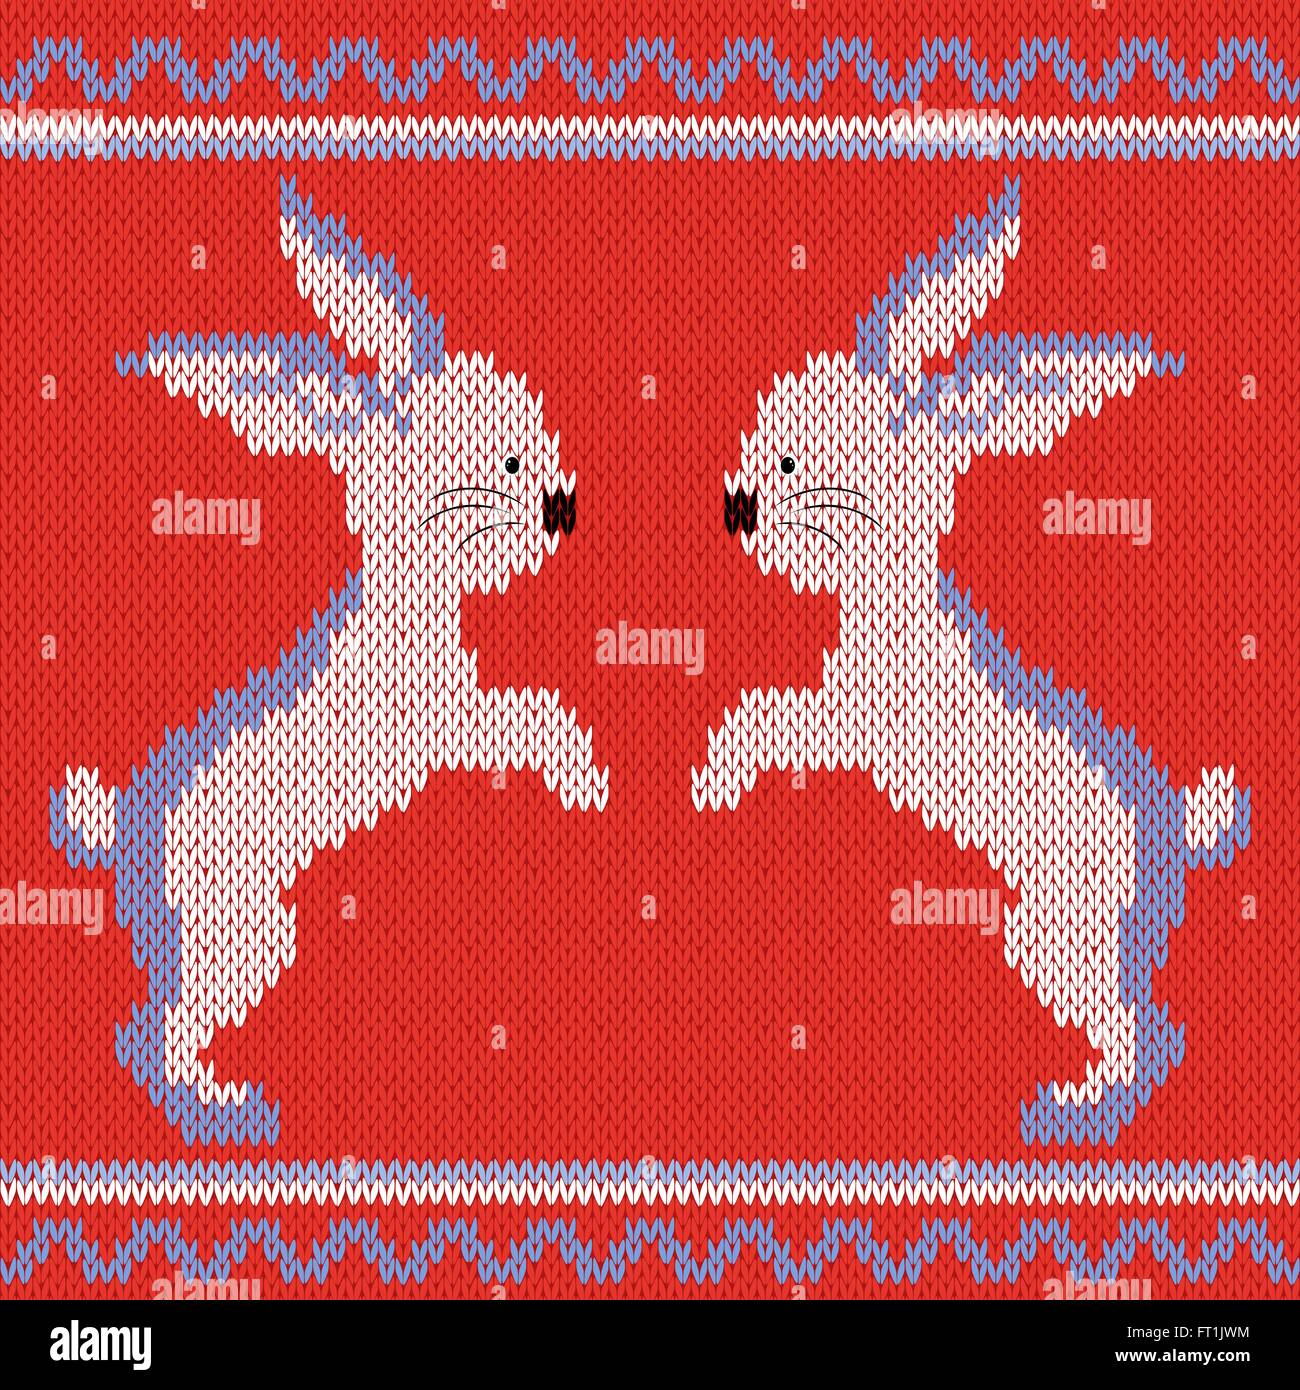 Knitted Ornamental vector pattern with white and blue two rabbits on the bright red background - Stock Vector